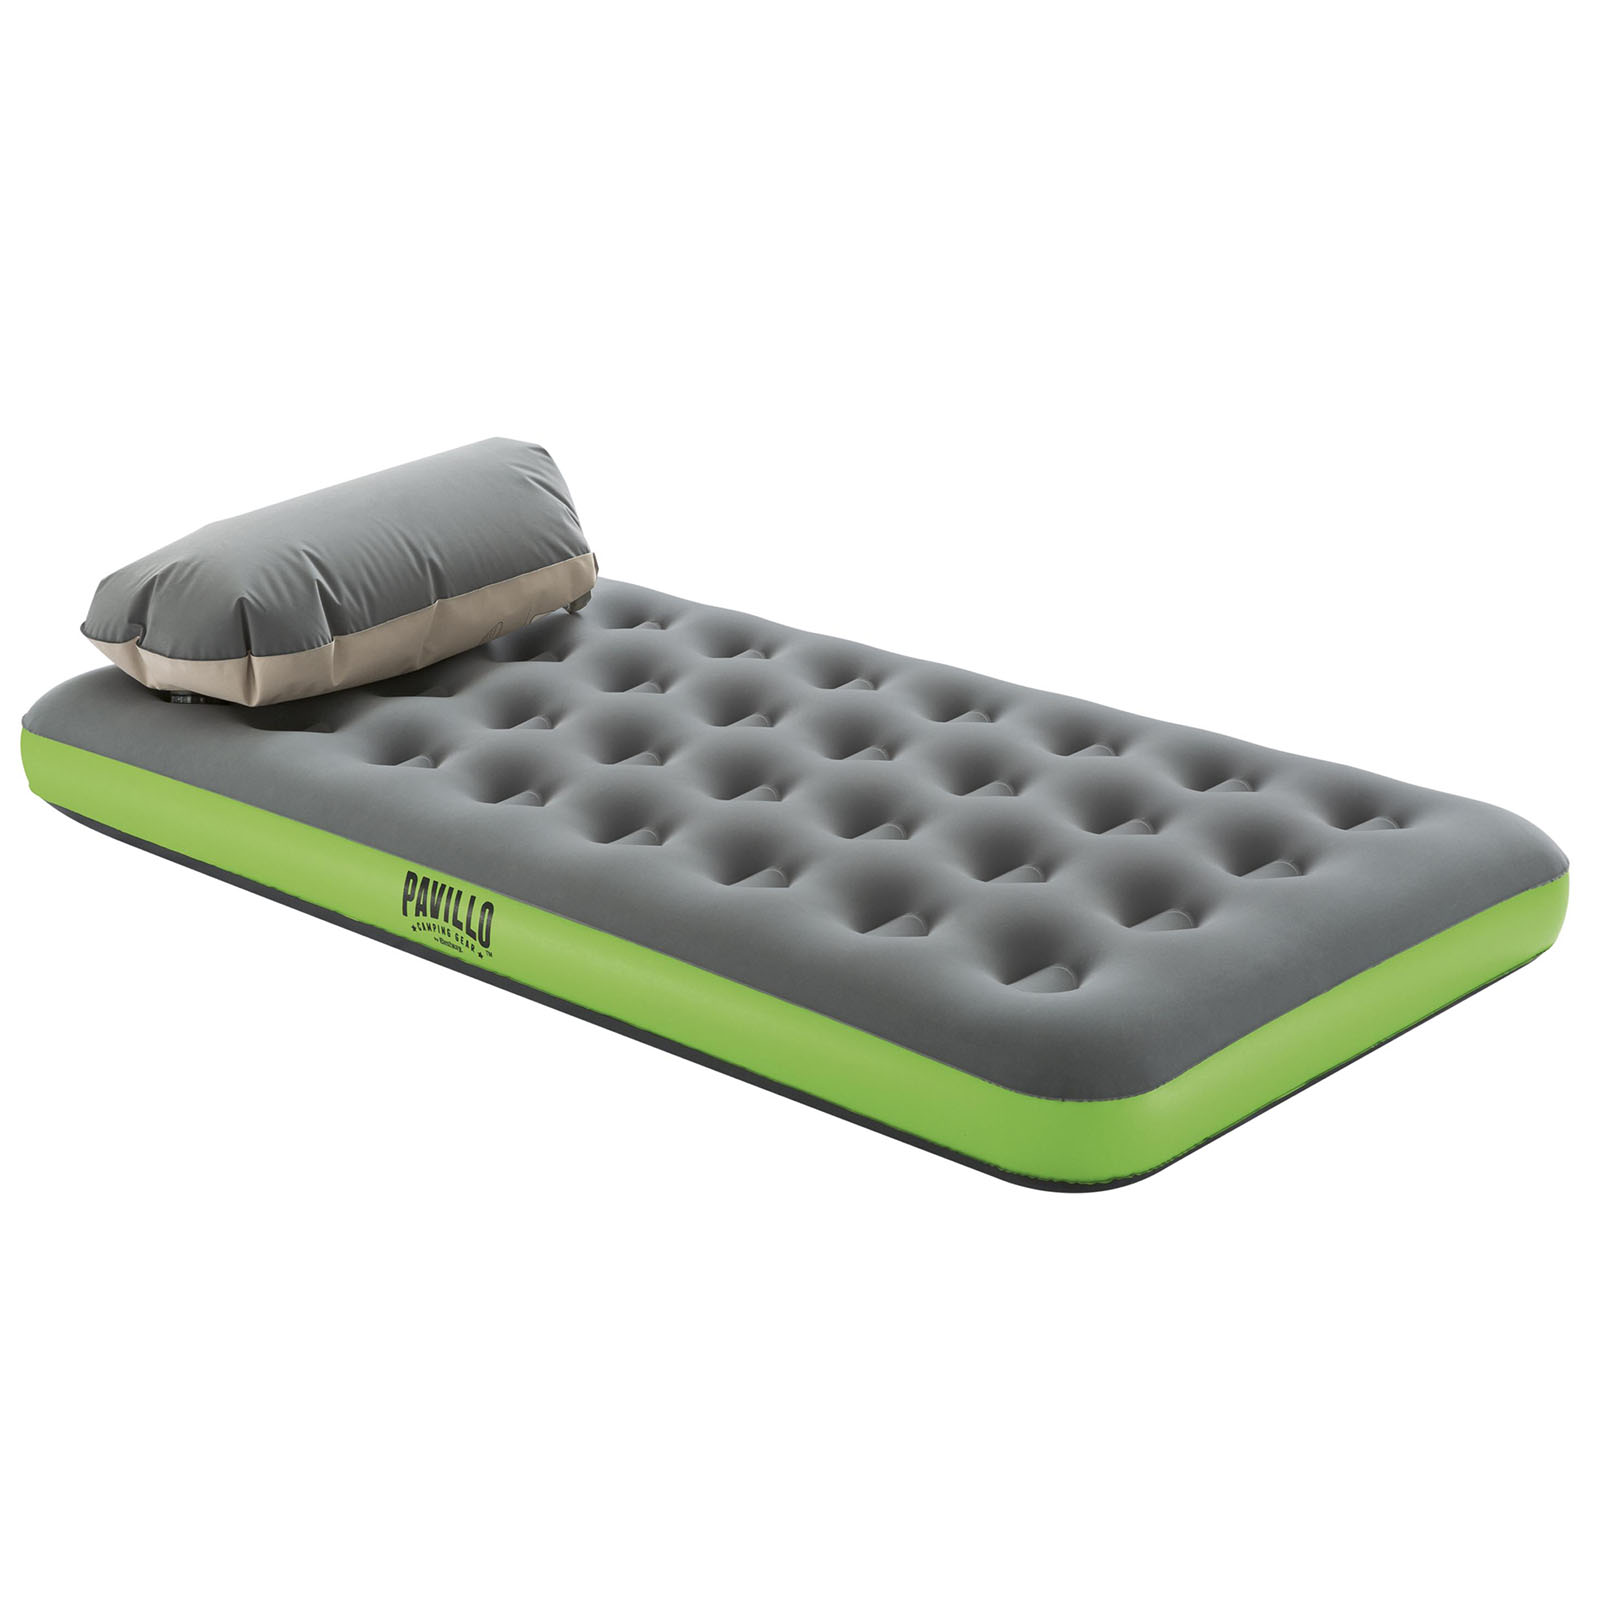 Bestway Air Bed Beds Mattress Twin Single Size Airbed Inflatable Sleeping Mats